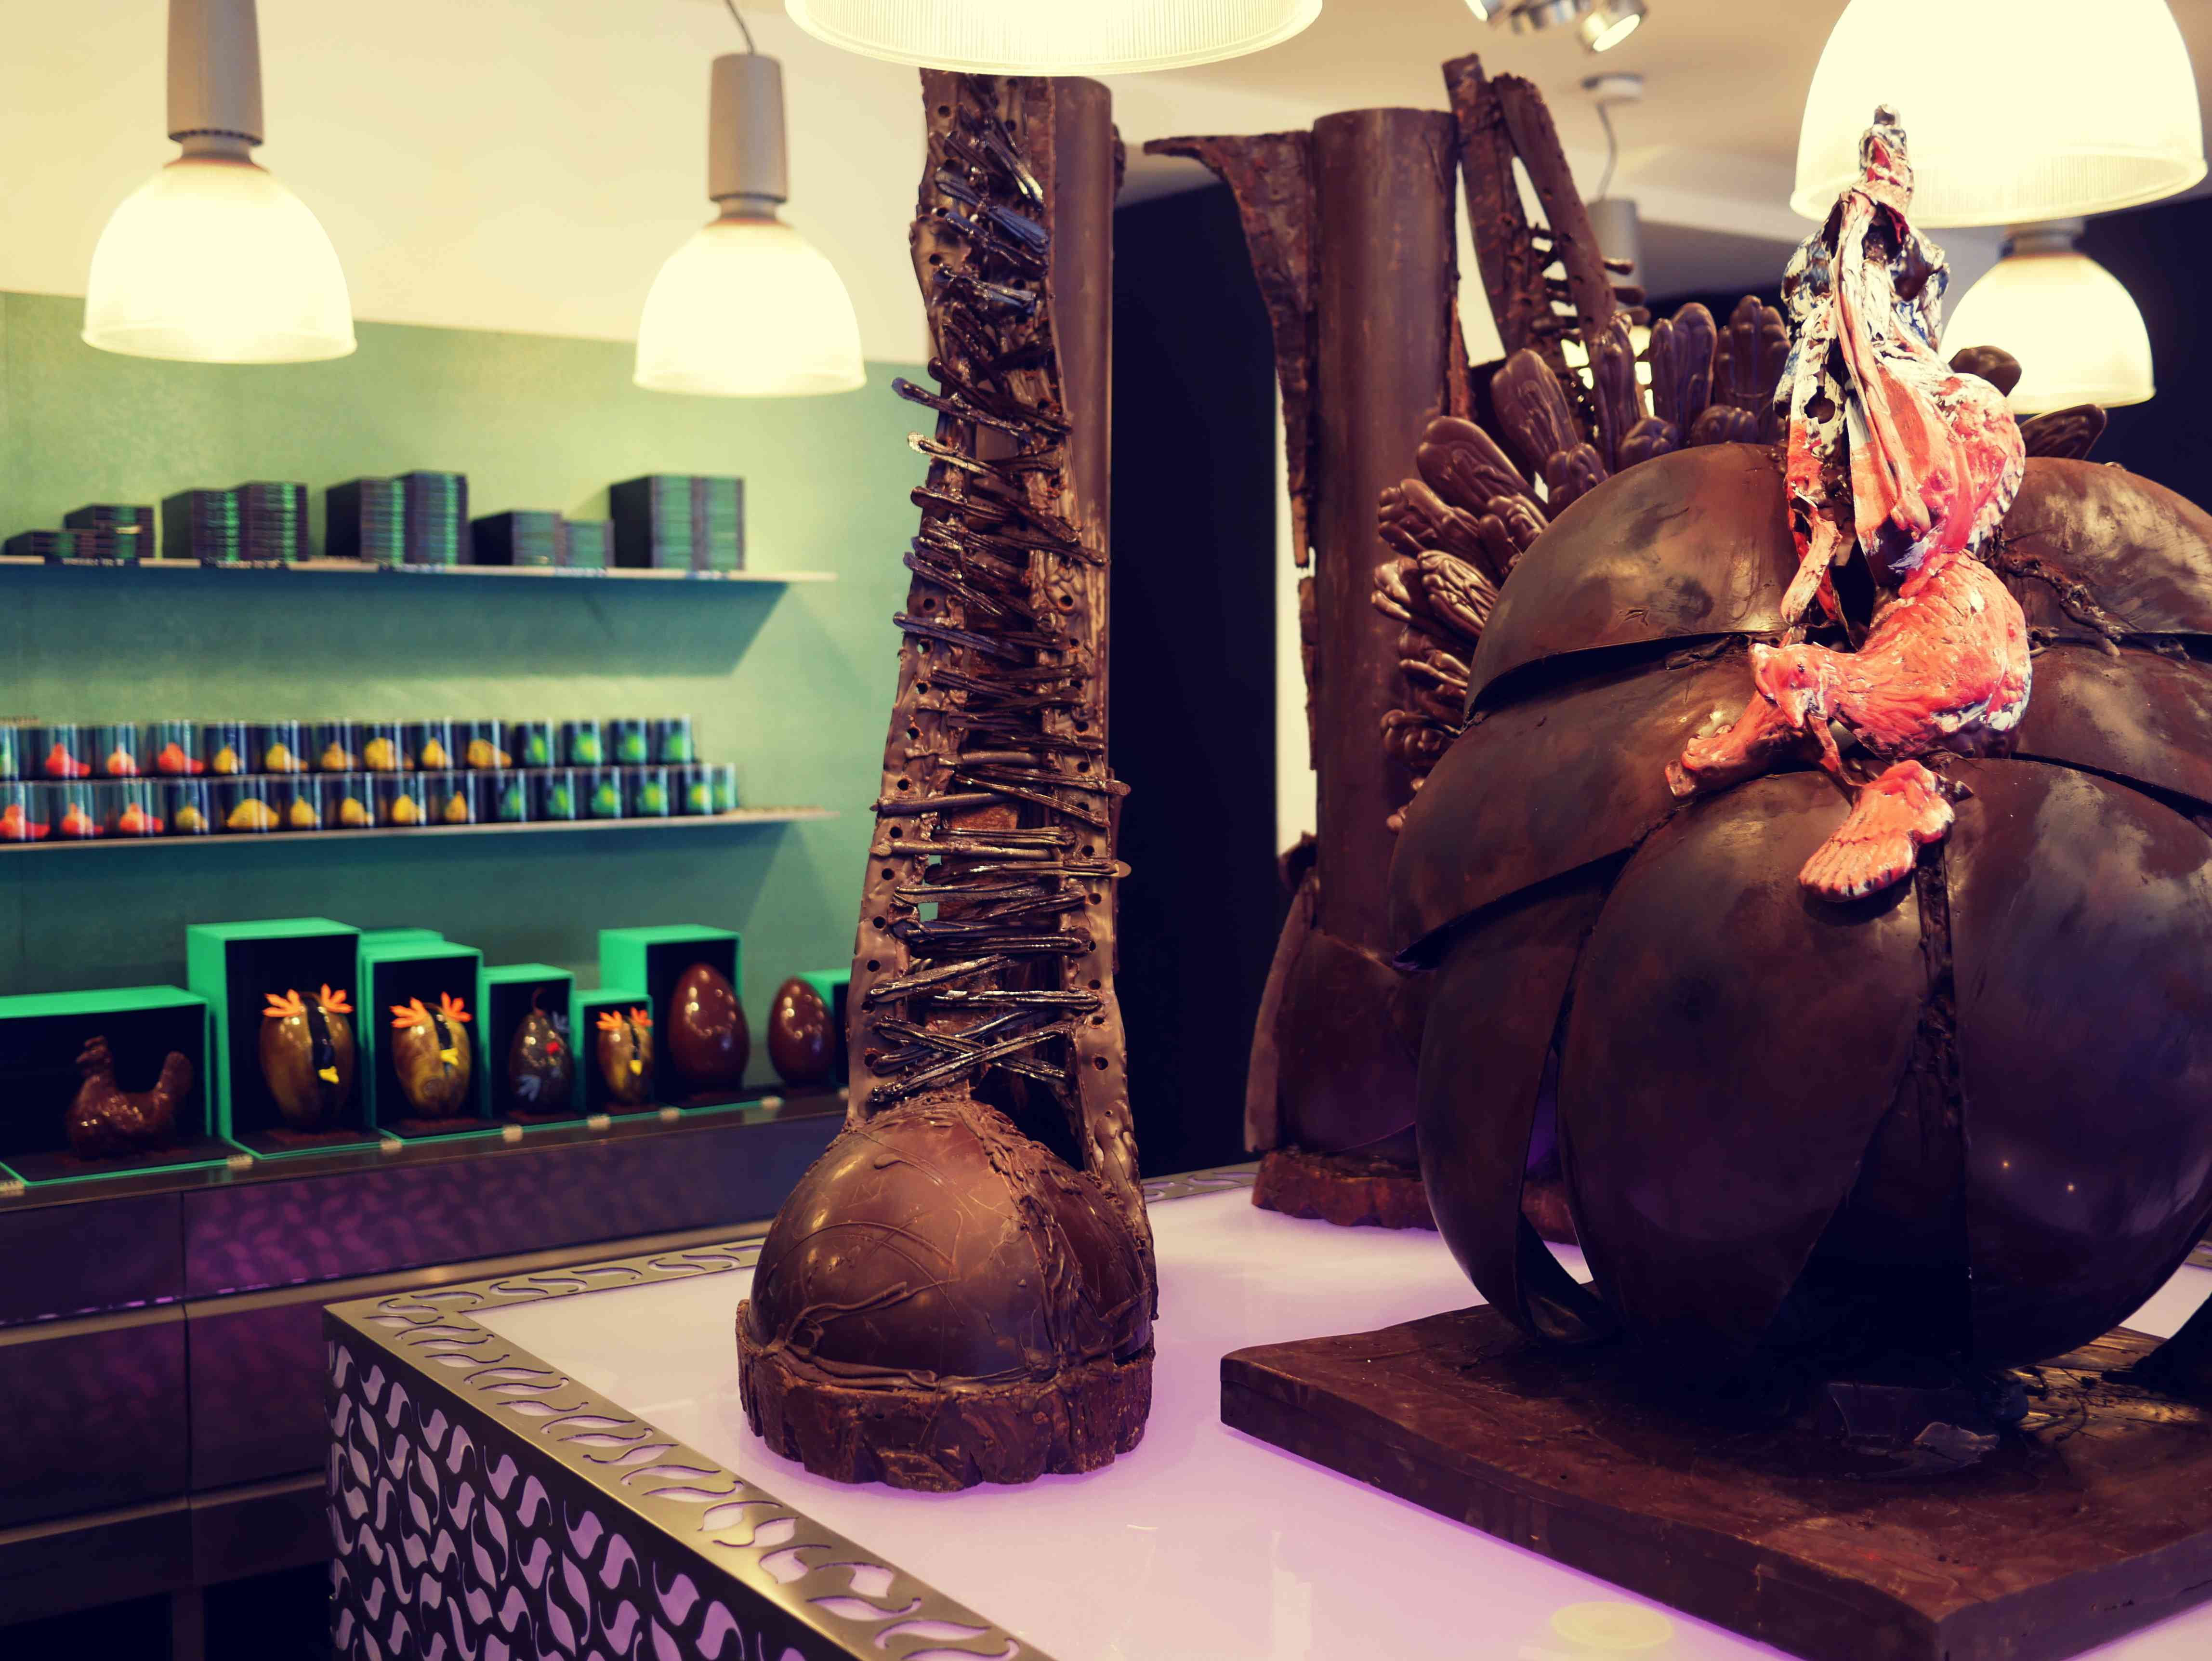 Patrick roger chocolate master confectioner in paris - Patrick roger chocolatier paris ...